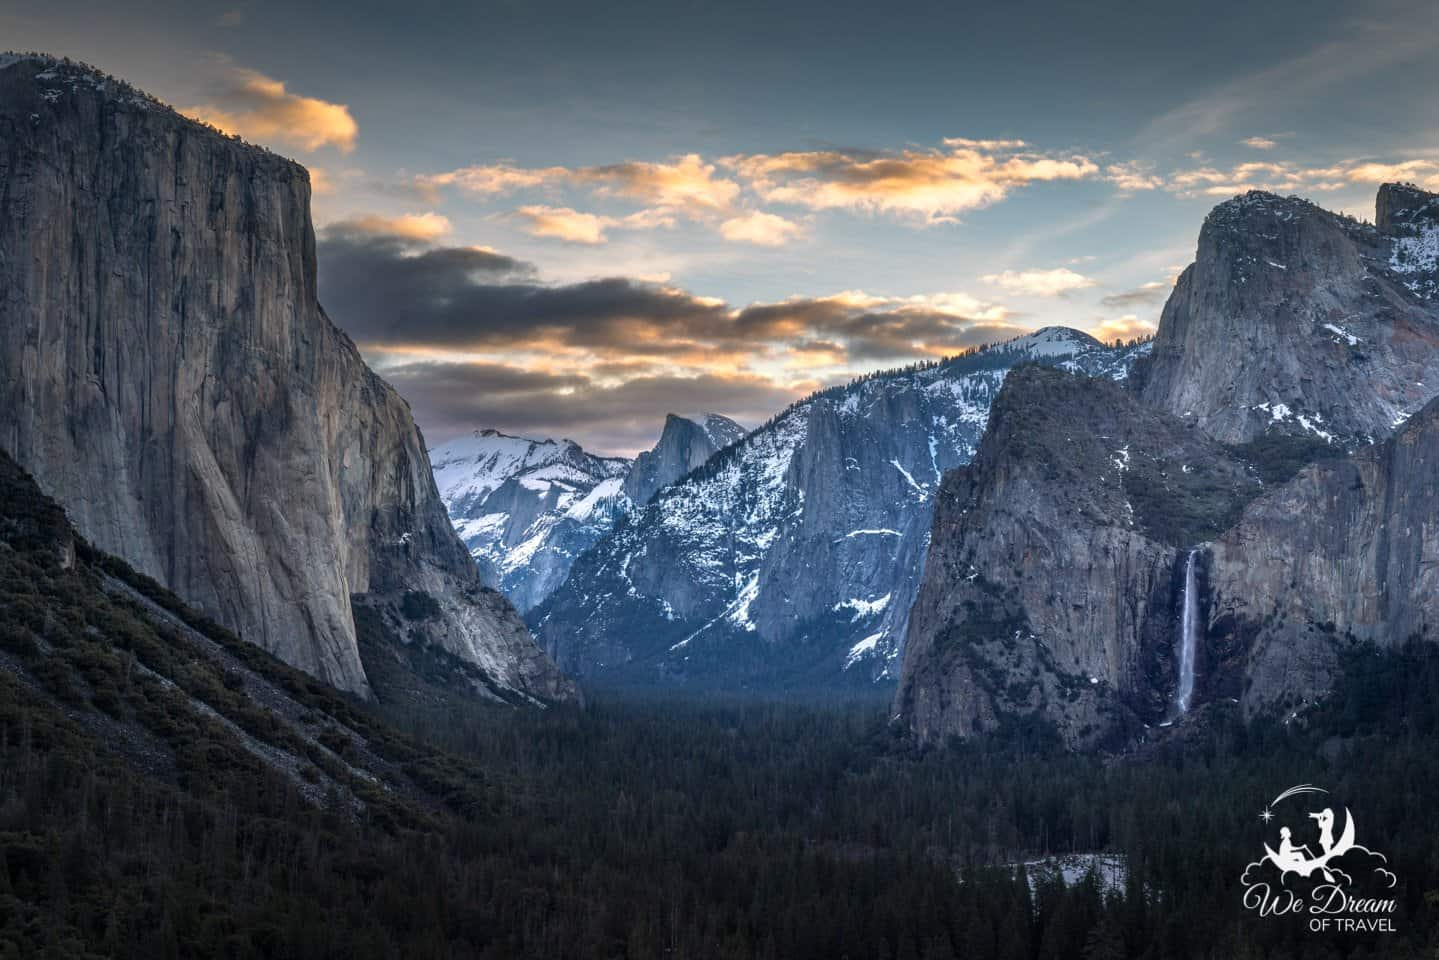 Tunnel View is an unbeatable vista for Yosemite sunrise photography.